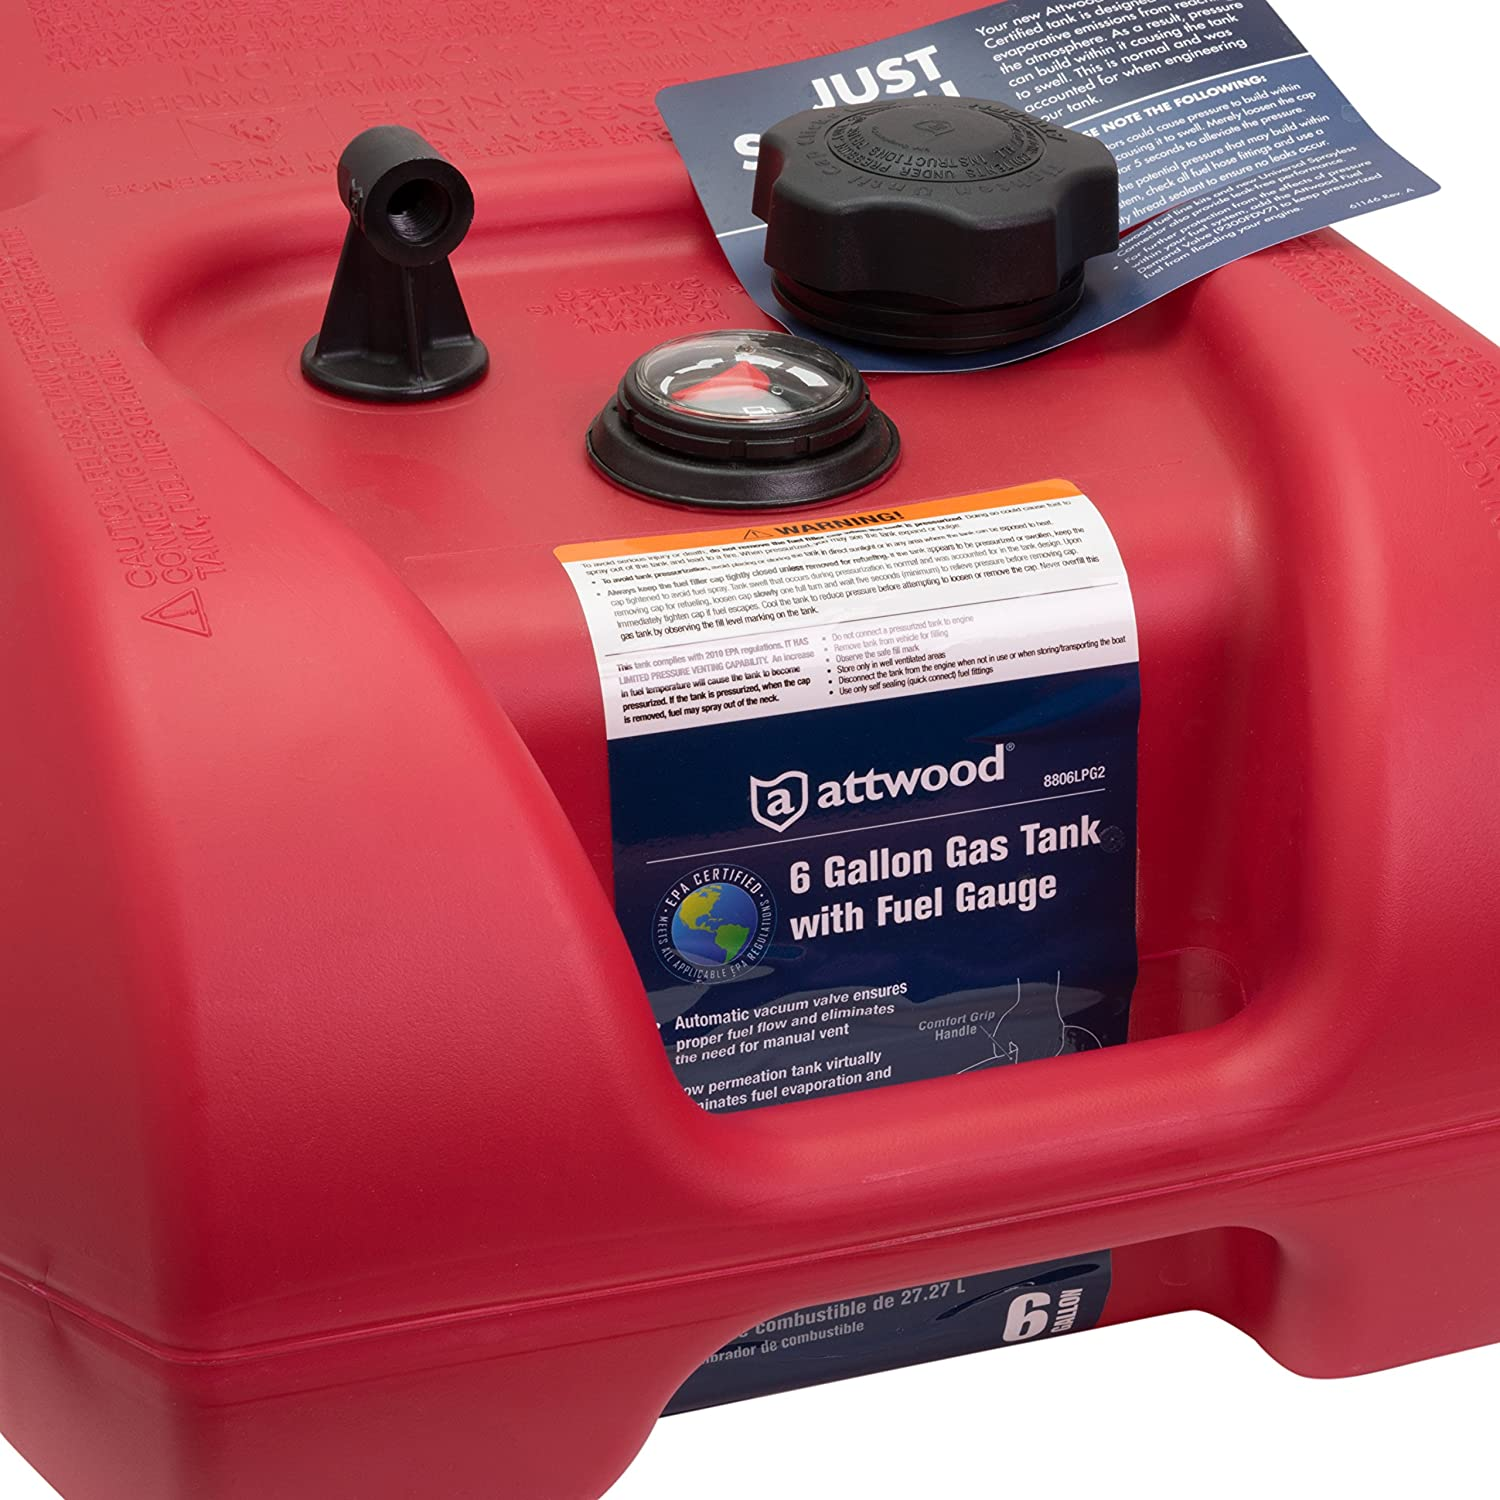 attwood 8806LP2 EPA and CARB Certified 6-Gallon Portable Marine Boat Fuel Tank